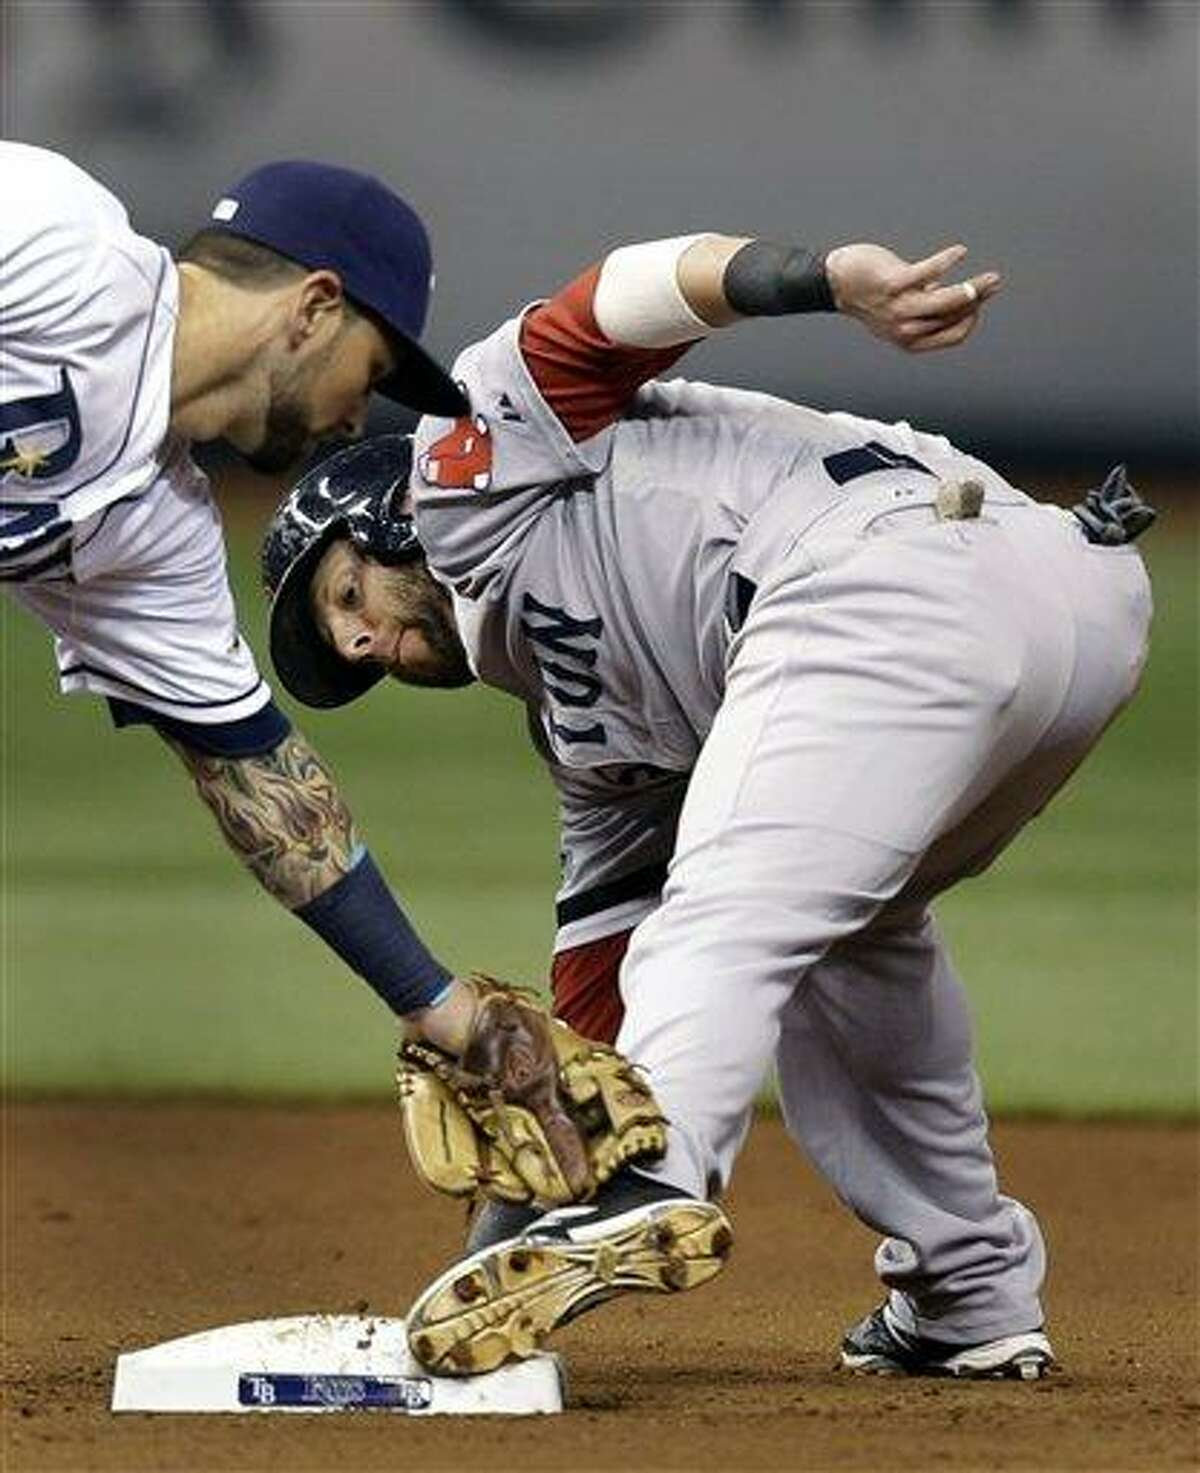 Boston Red Sox's Dustin Pedroia, right, gets into second with a stolen base ahead of the tag by Tampa Bay Rays second baseman Ryan Roberts during the sixth inning of a baseball game, Monday, Sept. 17, 2012, in St. Petersburg, Fla. (AP Photo/Chris O'Meara)